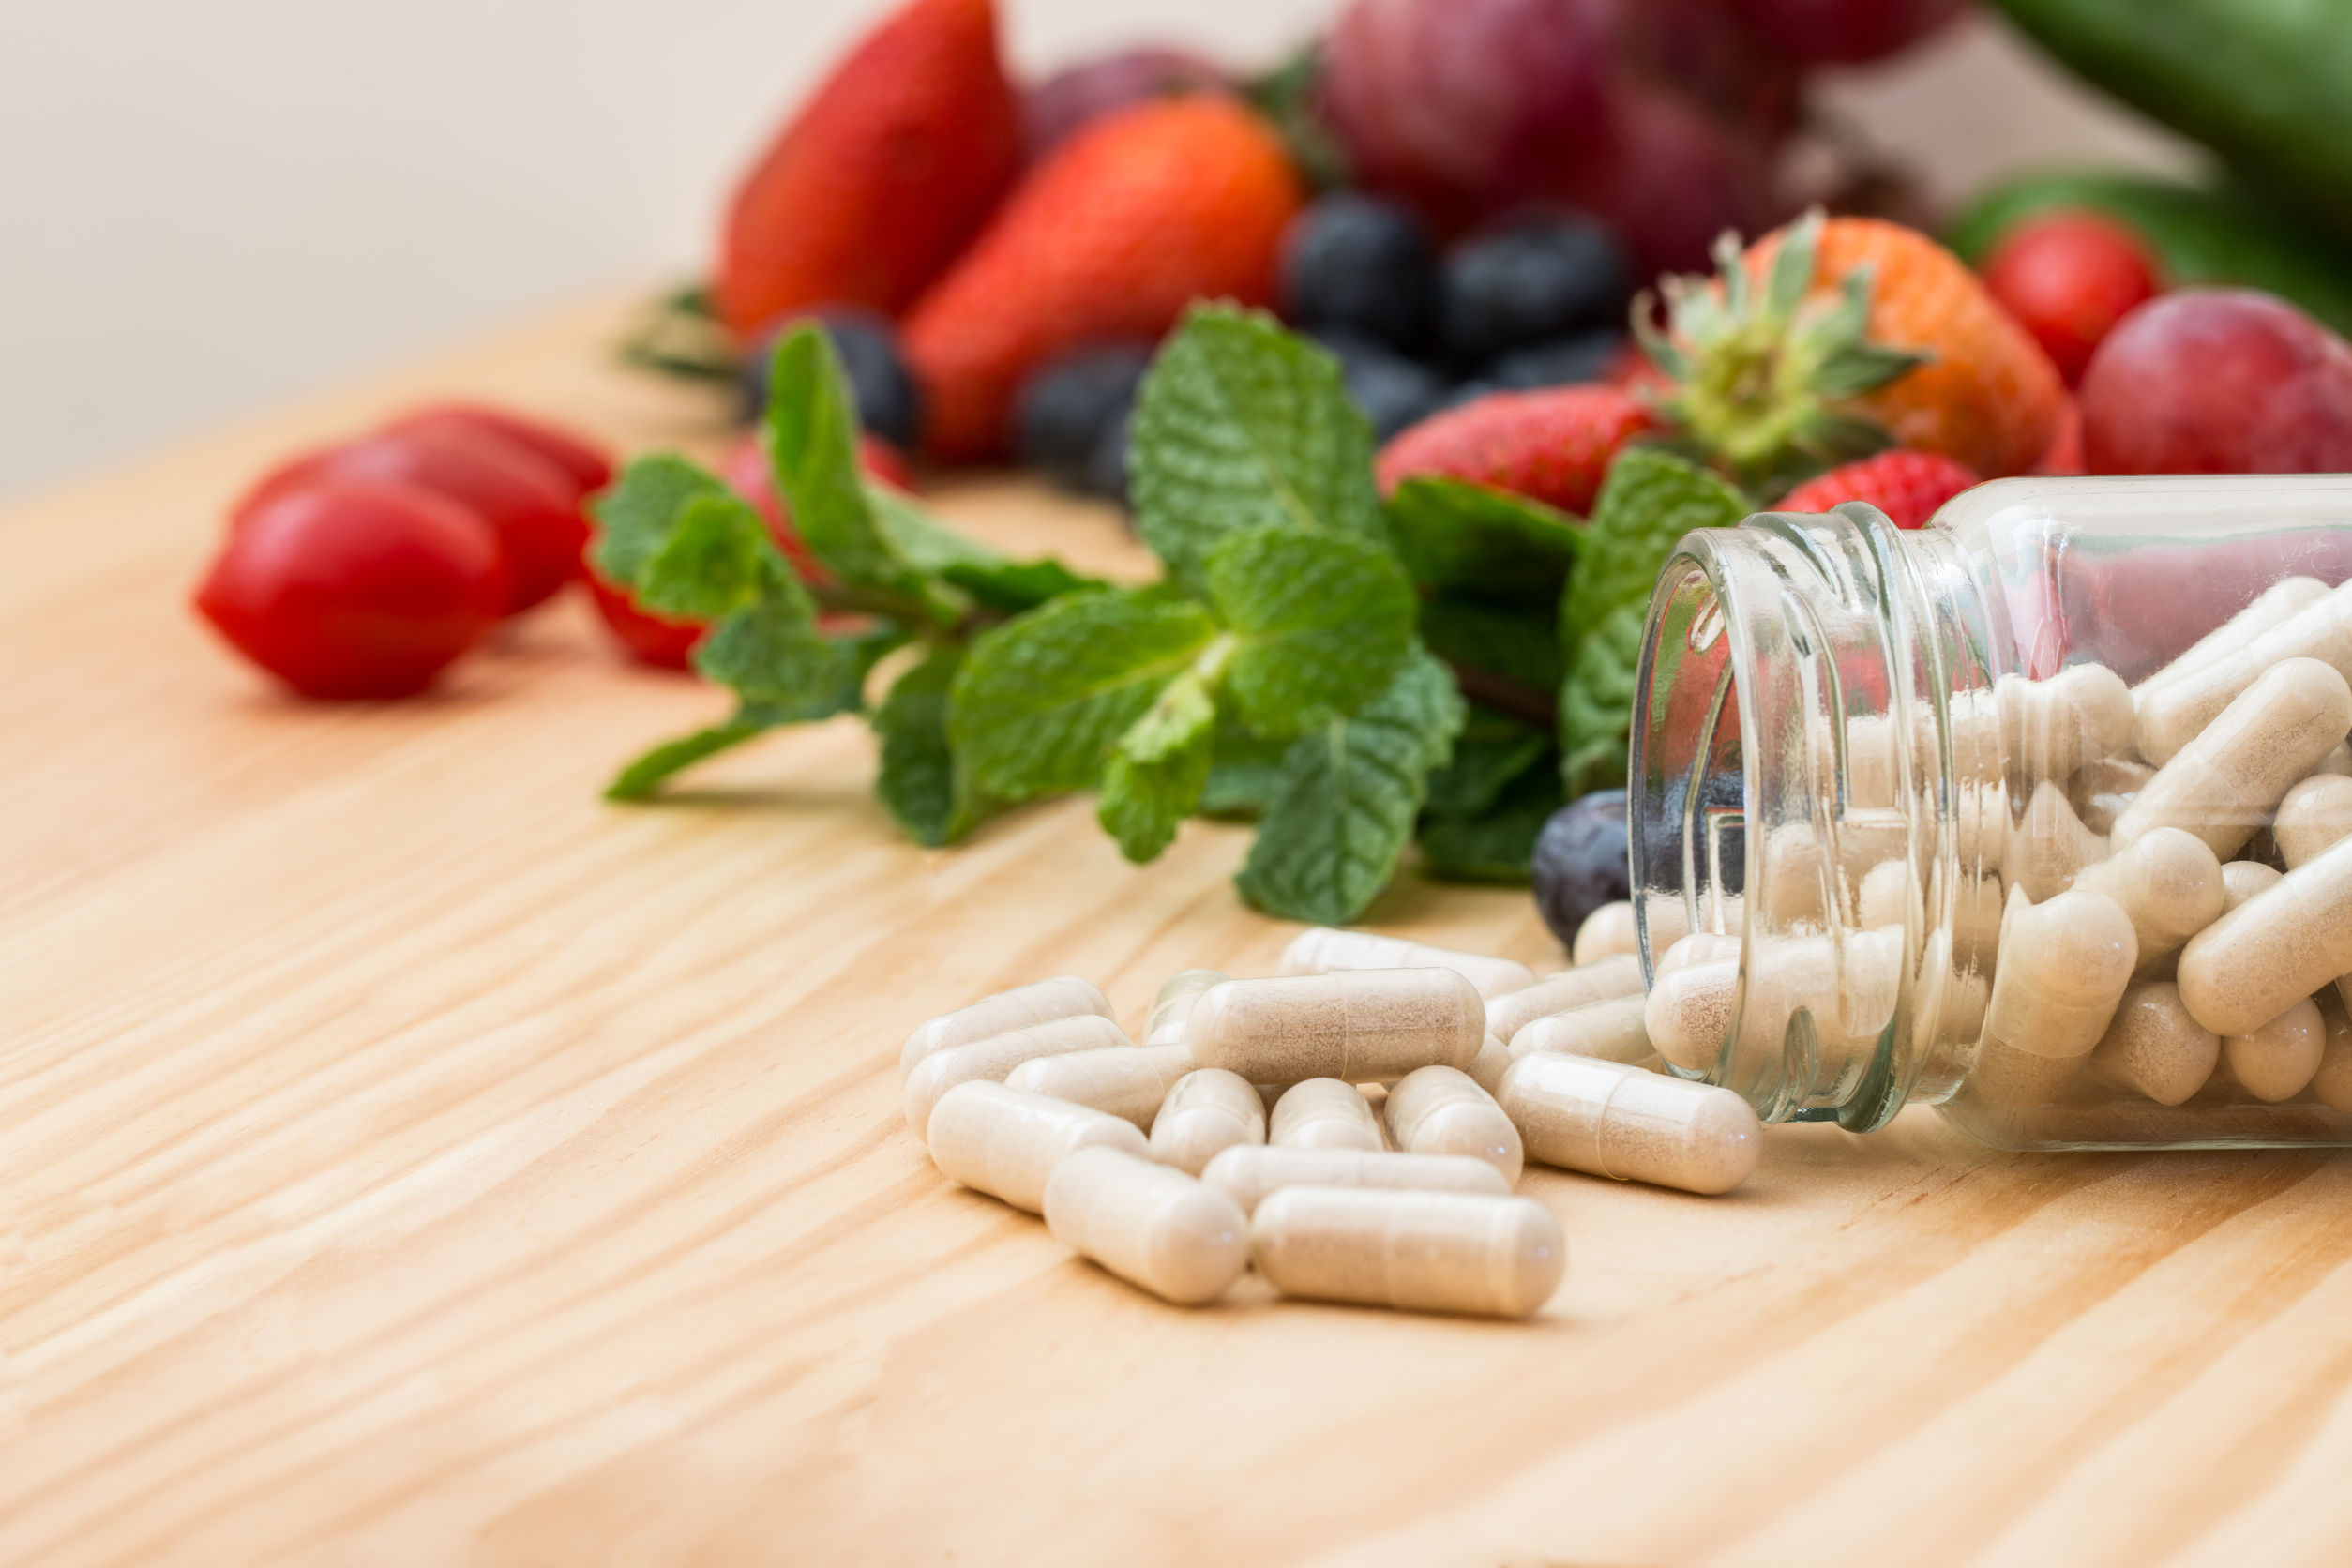 Best Multivitamin 2020: Shopping Guide & Review